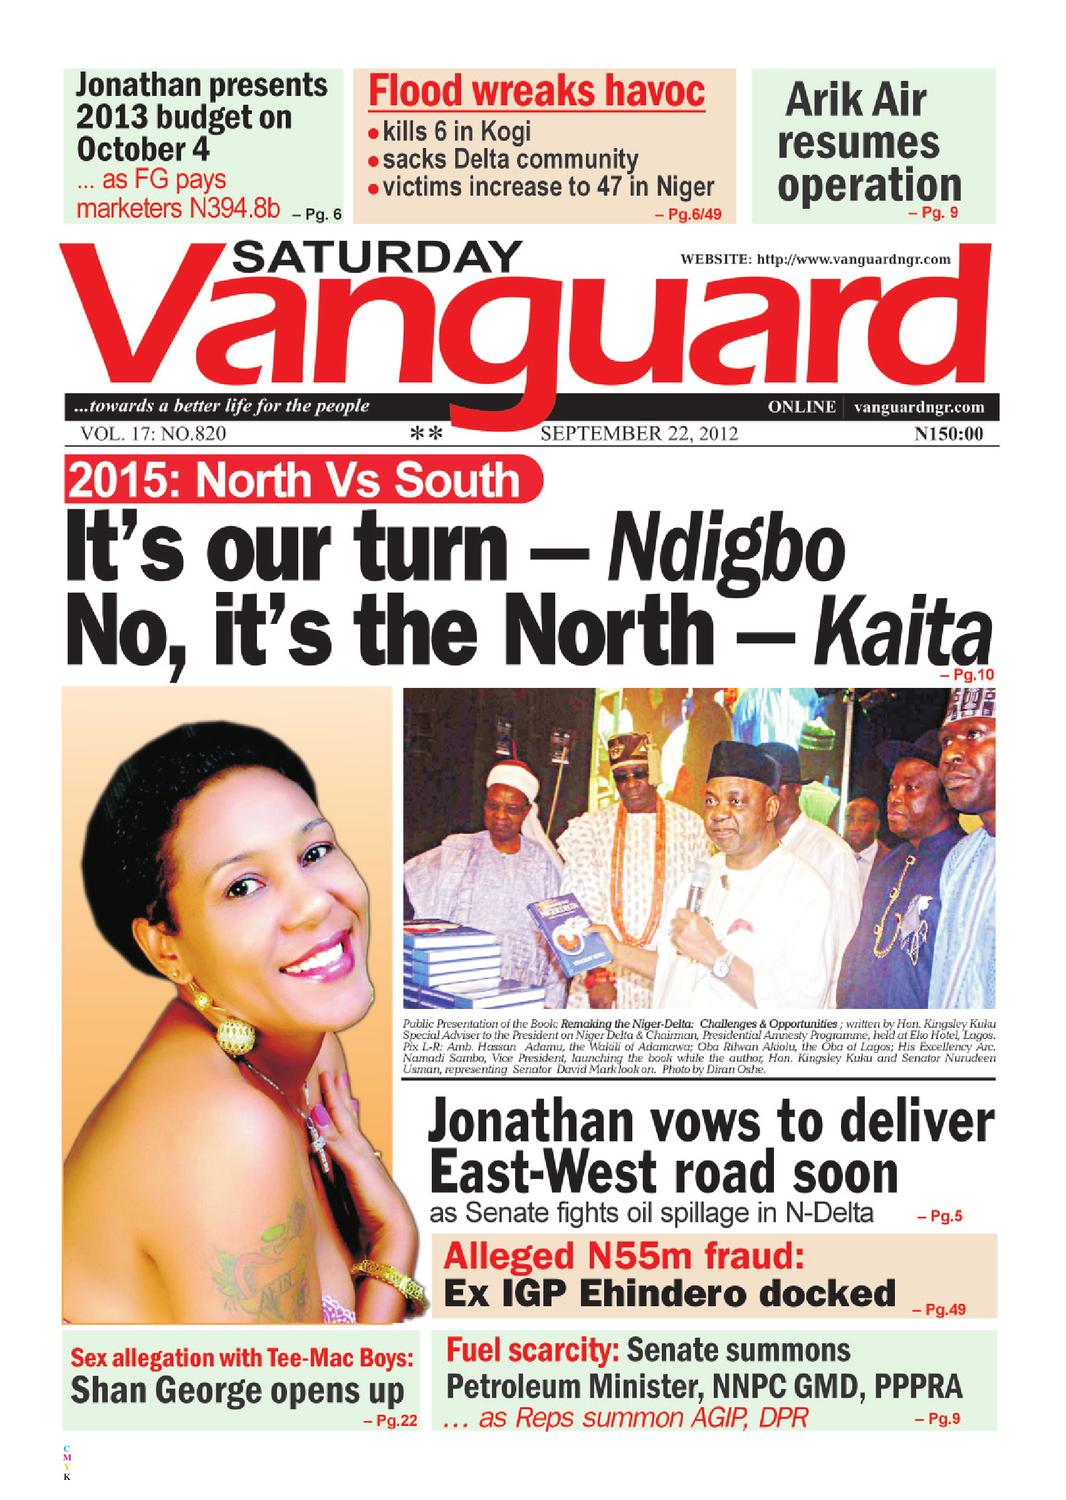 it's our turn - Ndigbo, No, it's the north - Kaita by